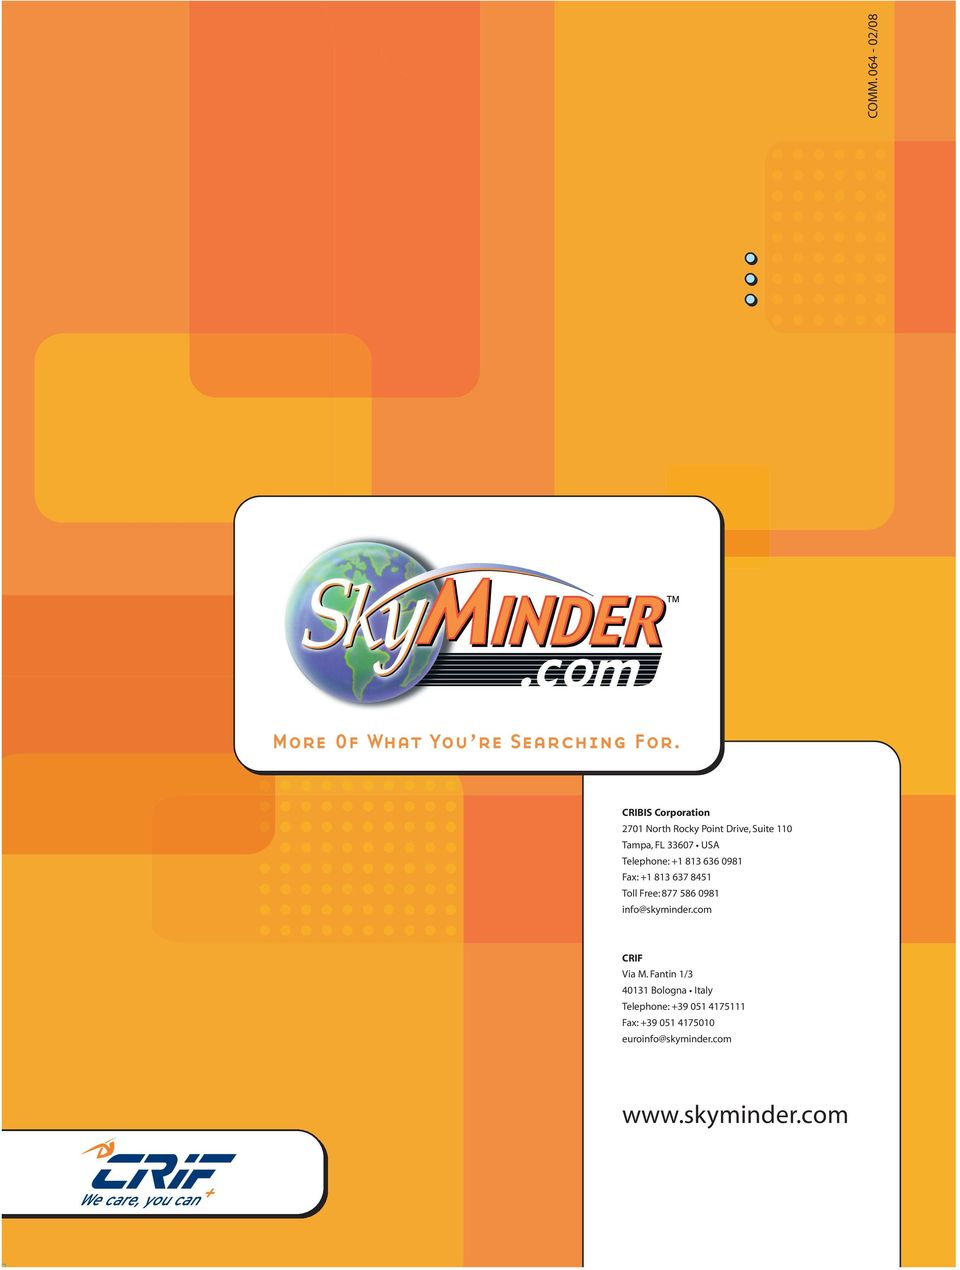 Telephone: +1 813 636 0981 Fax: +1 813 637 8451 Toll Free: 877 586 0981 info@skyminder.